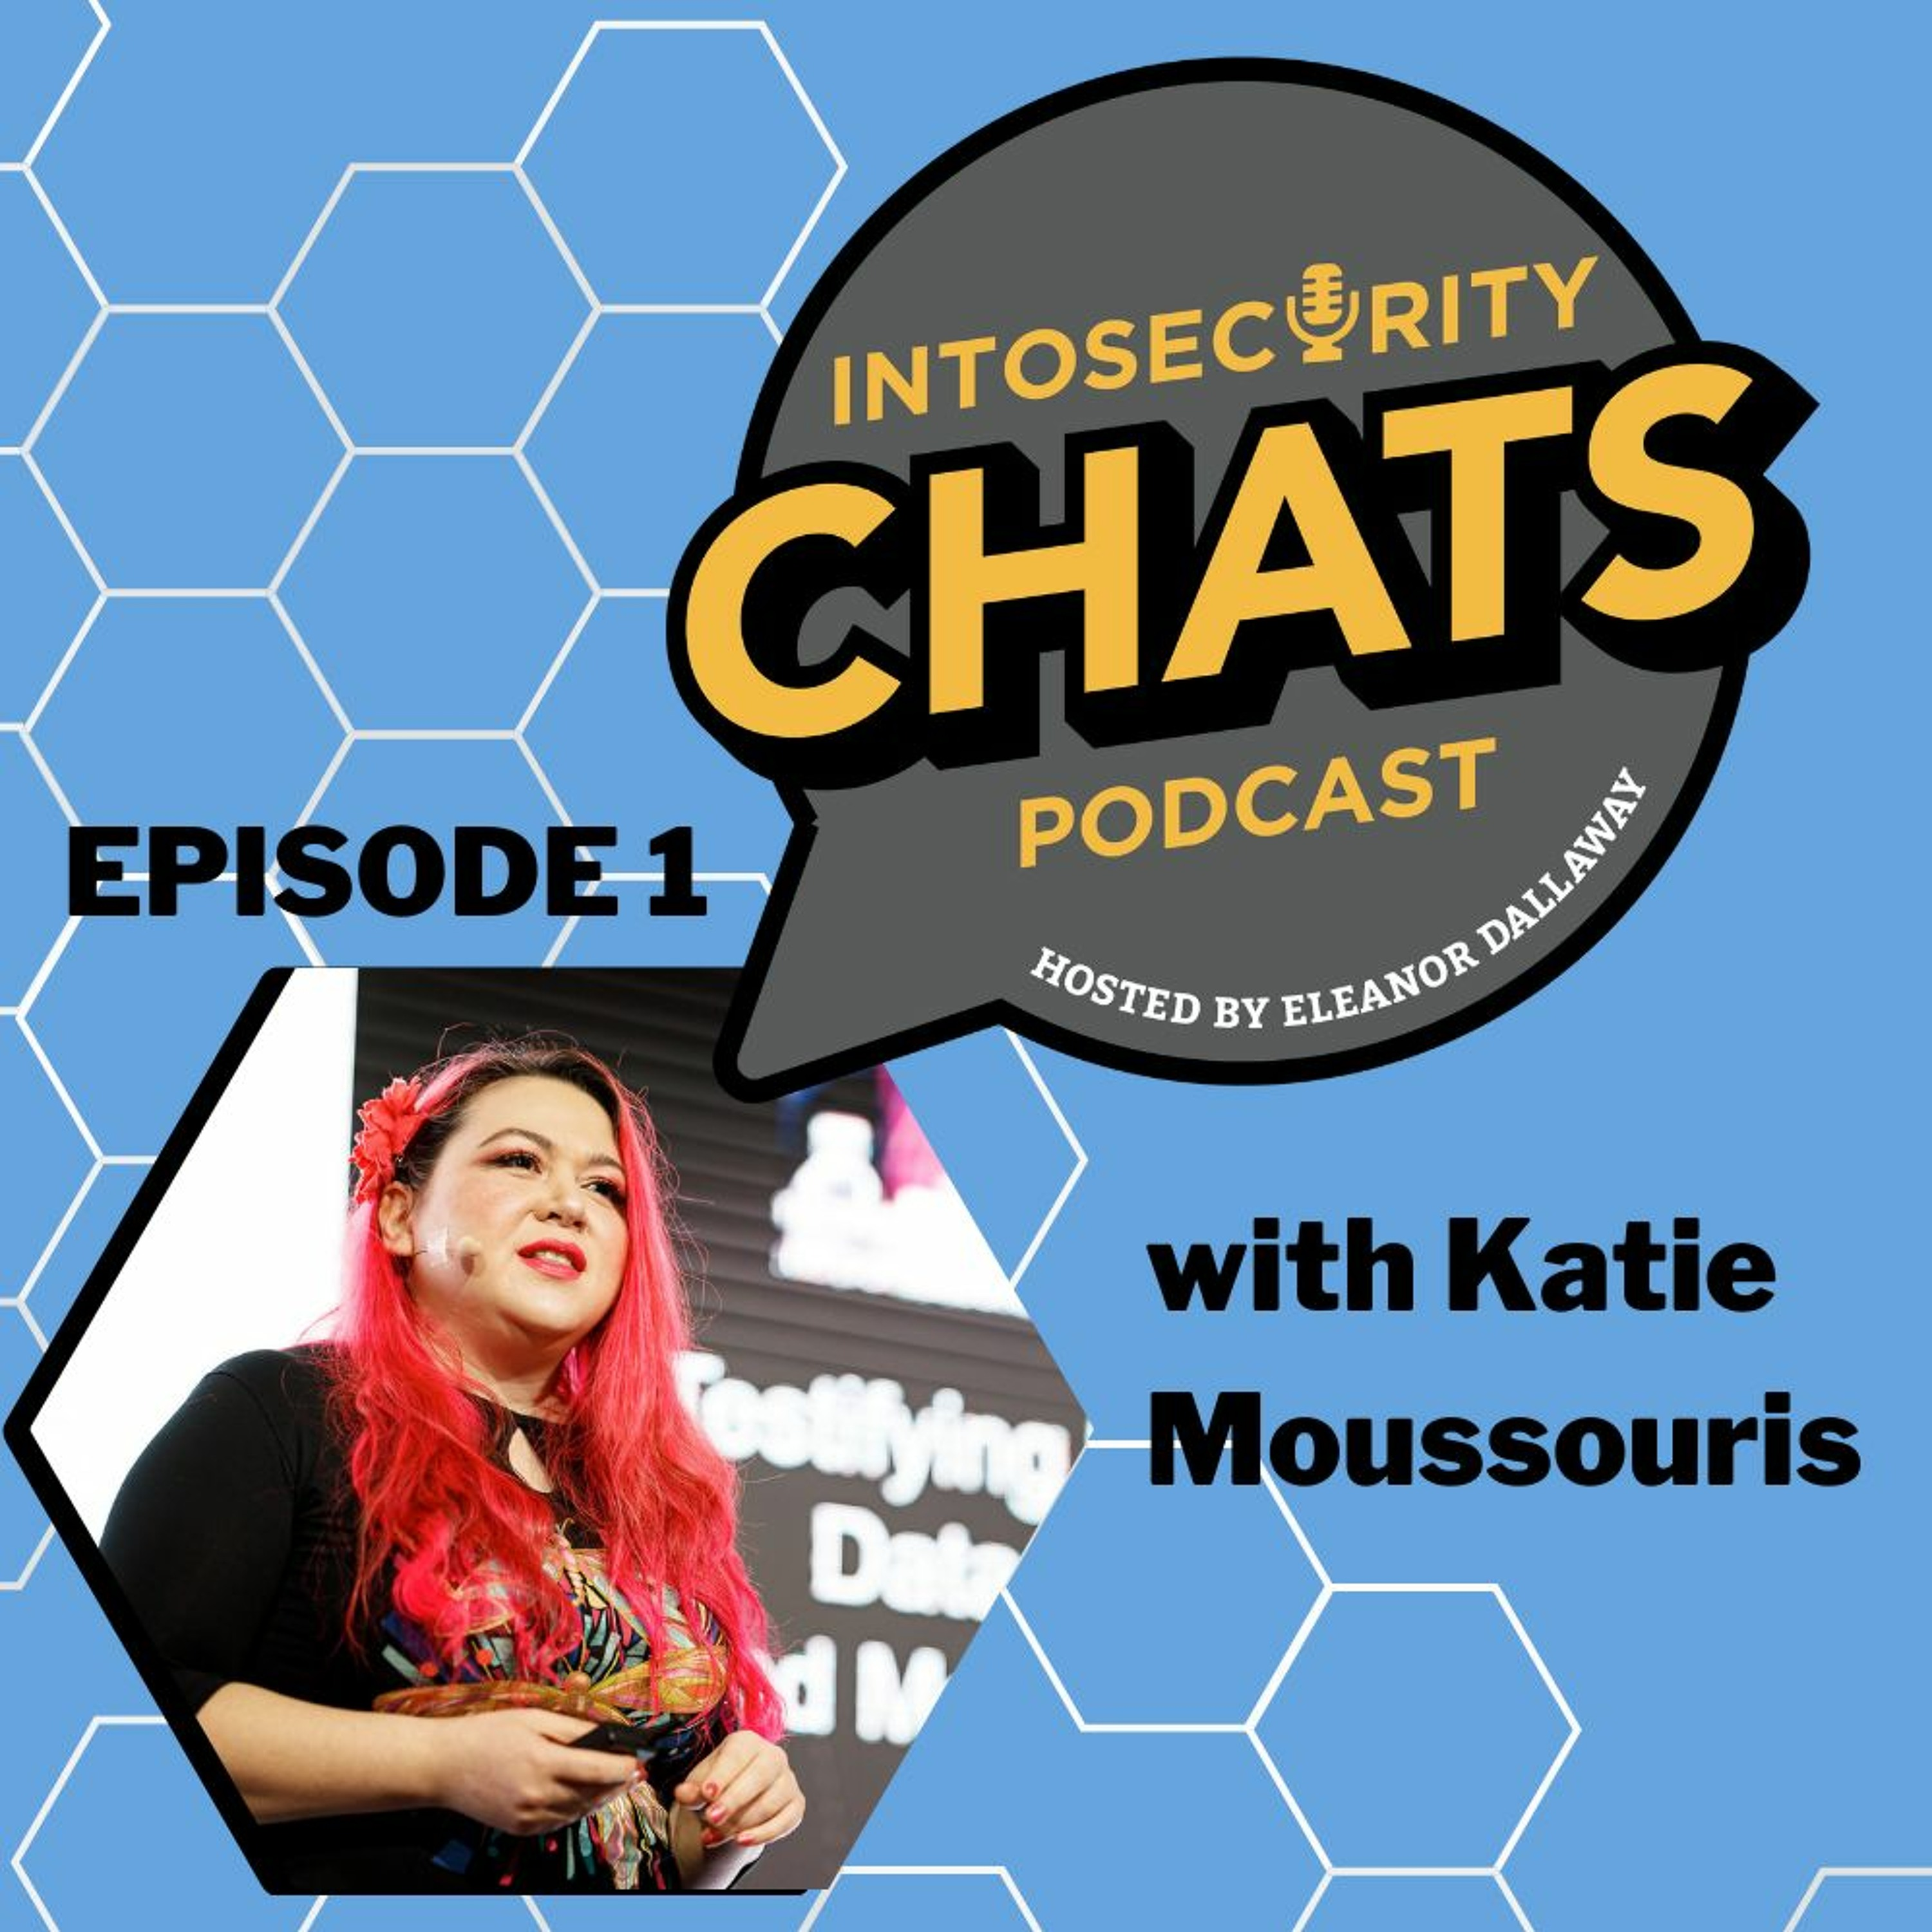 IntoSecurity Chats Episode 1 - Katie Moussouris